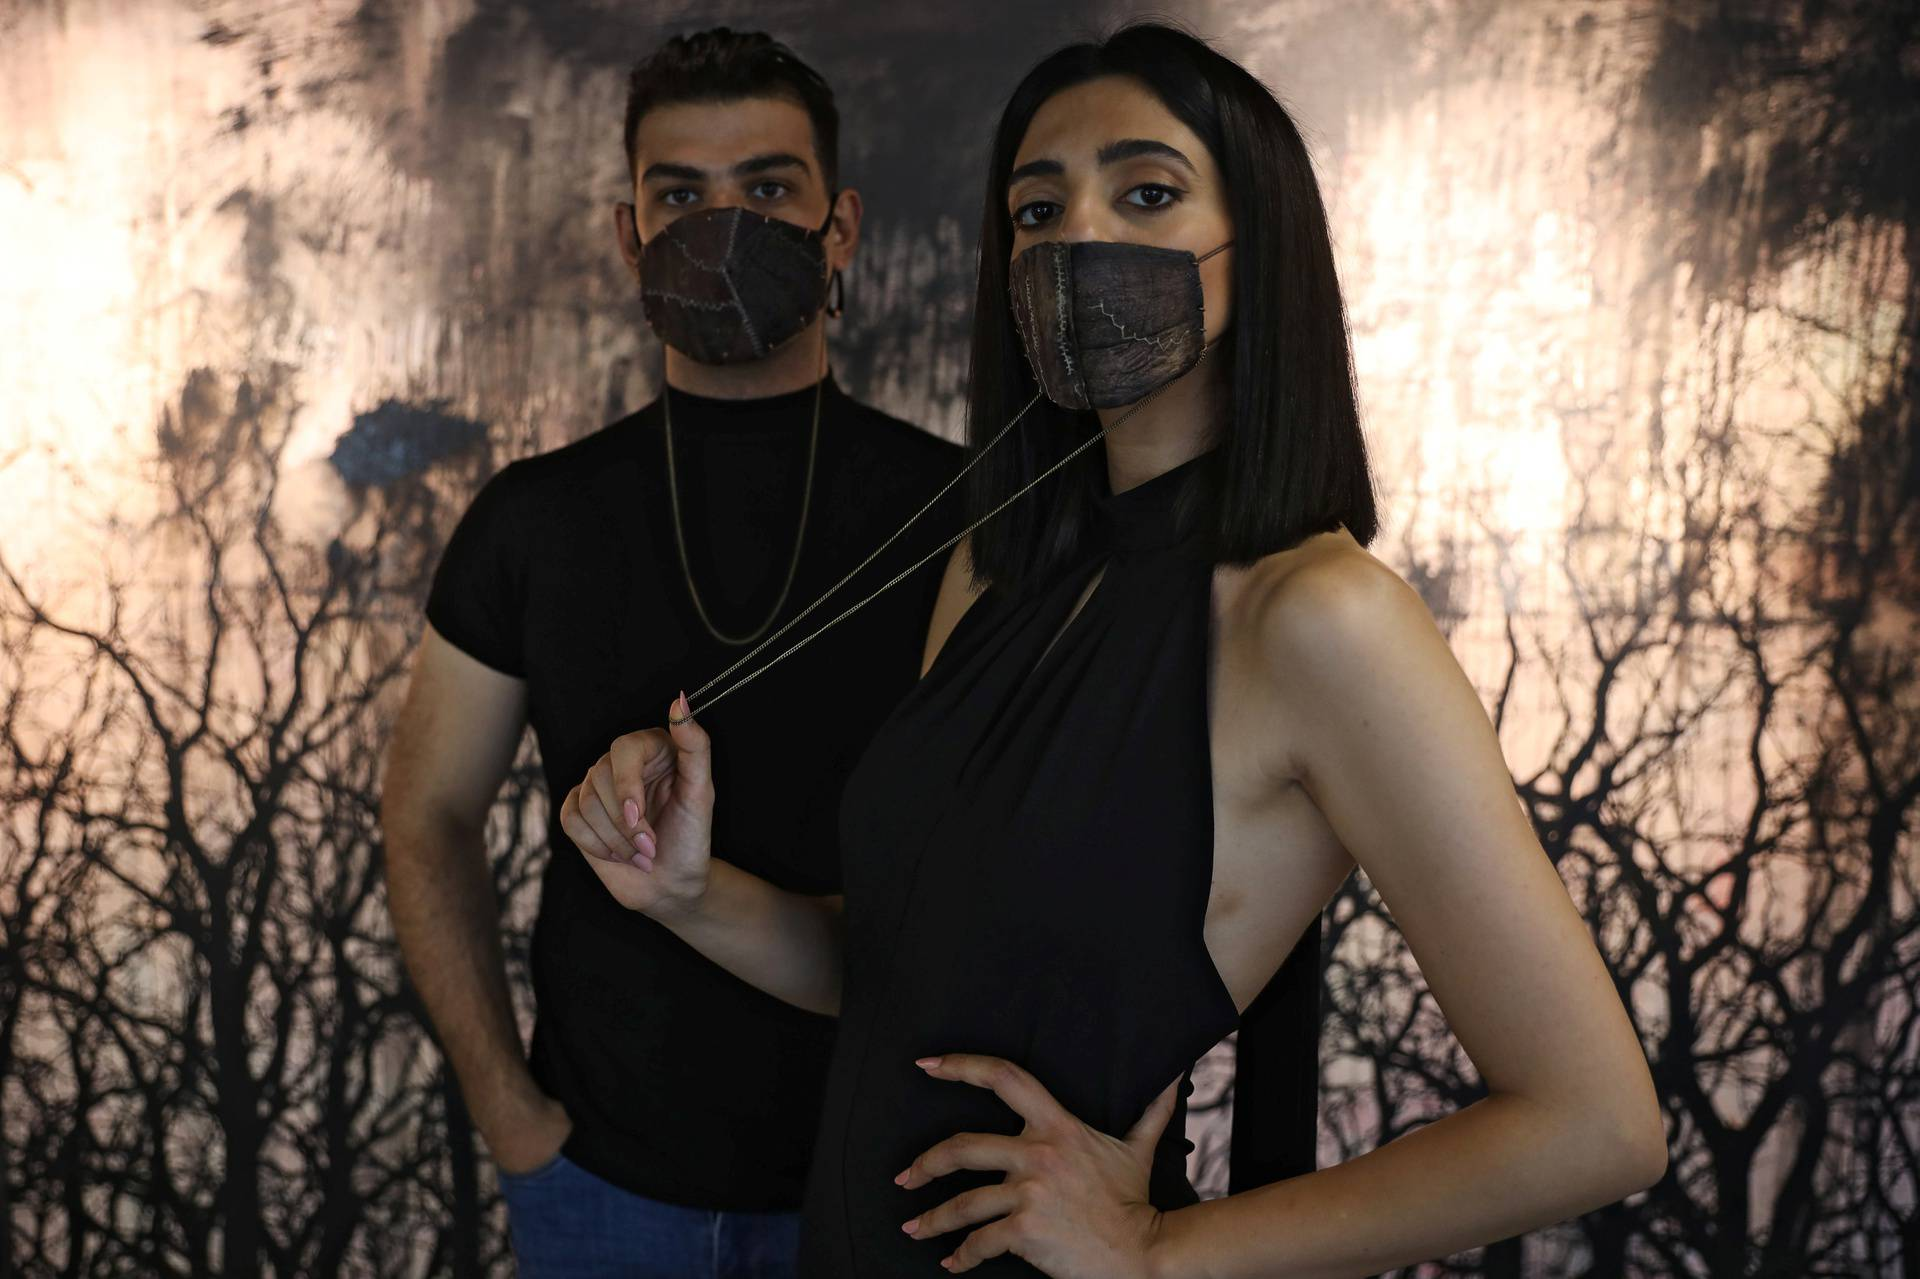 Jordanian chef develops eggplant 'leather', creates sustainable face masks in Amman